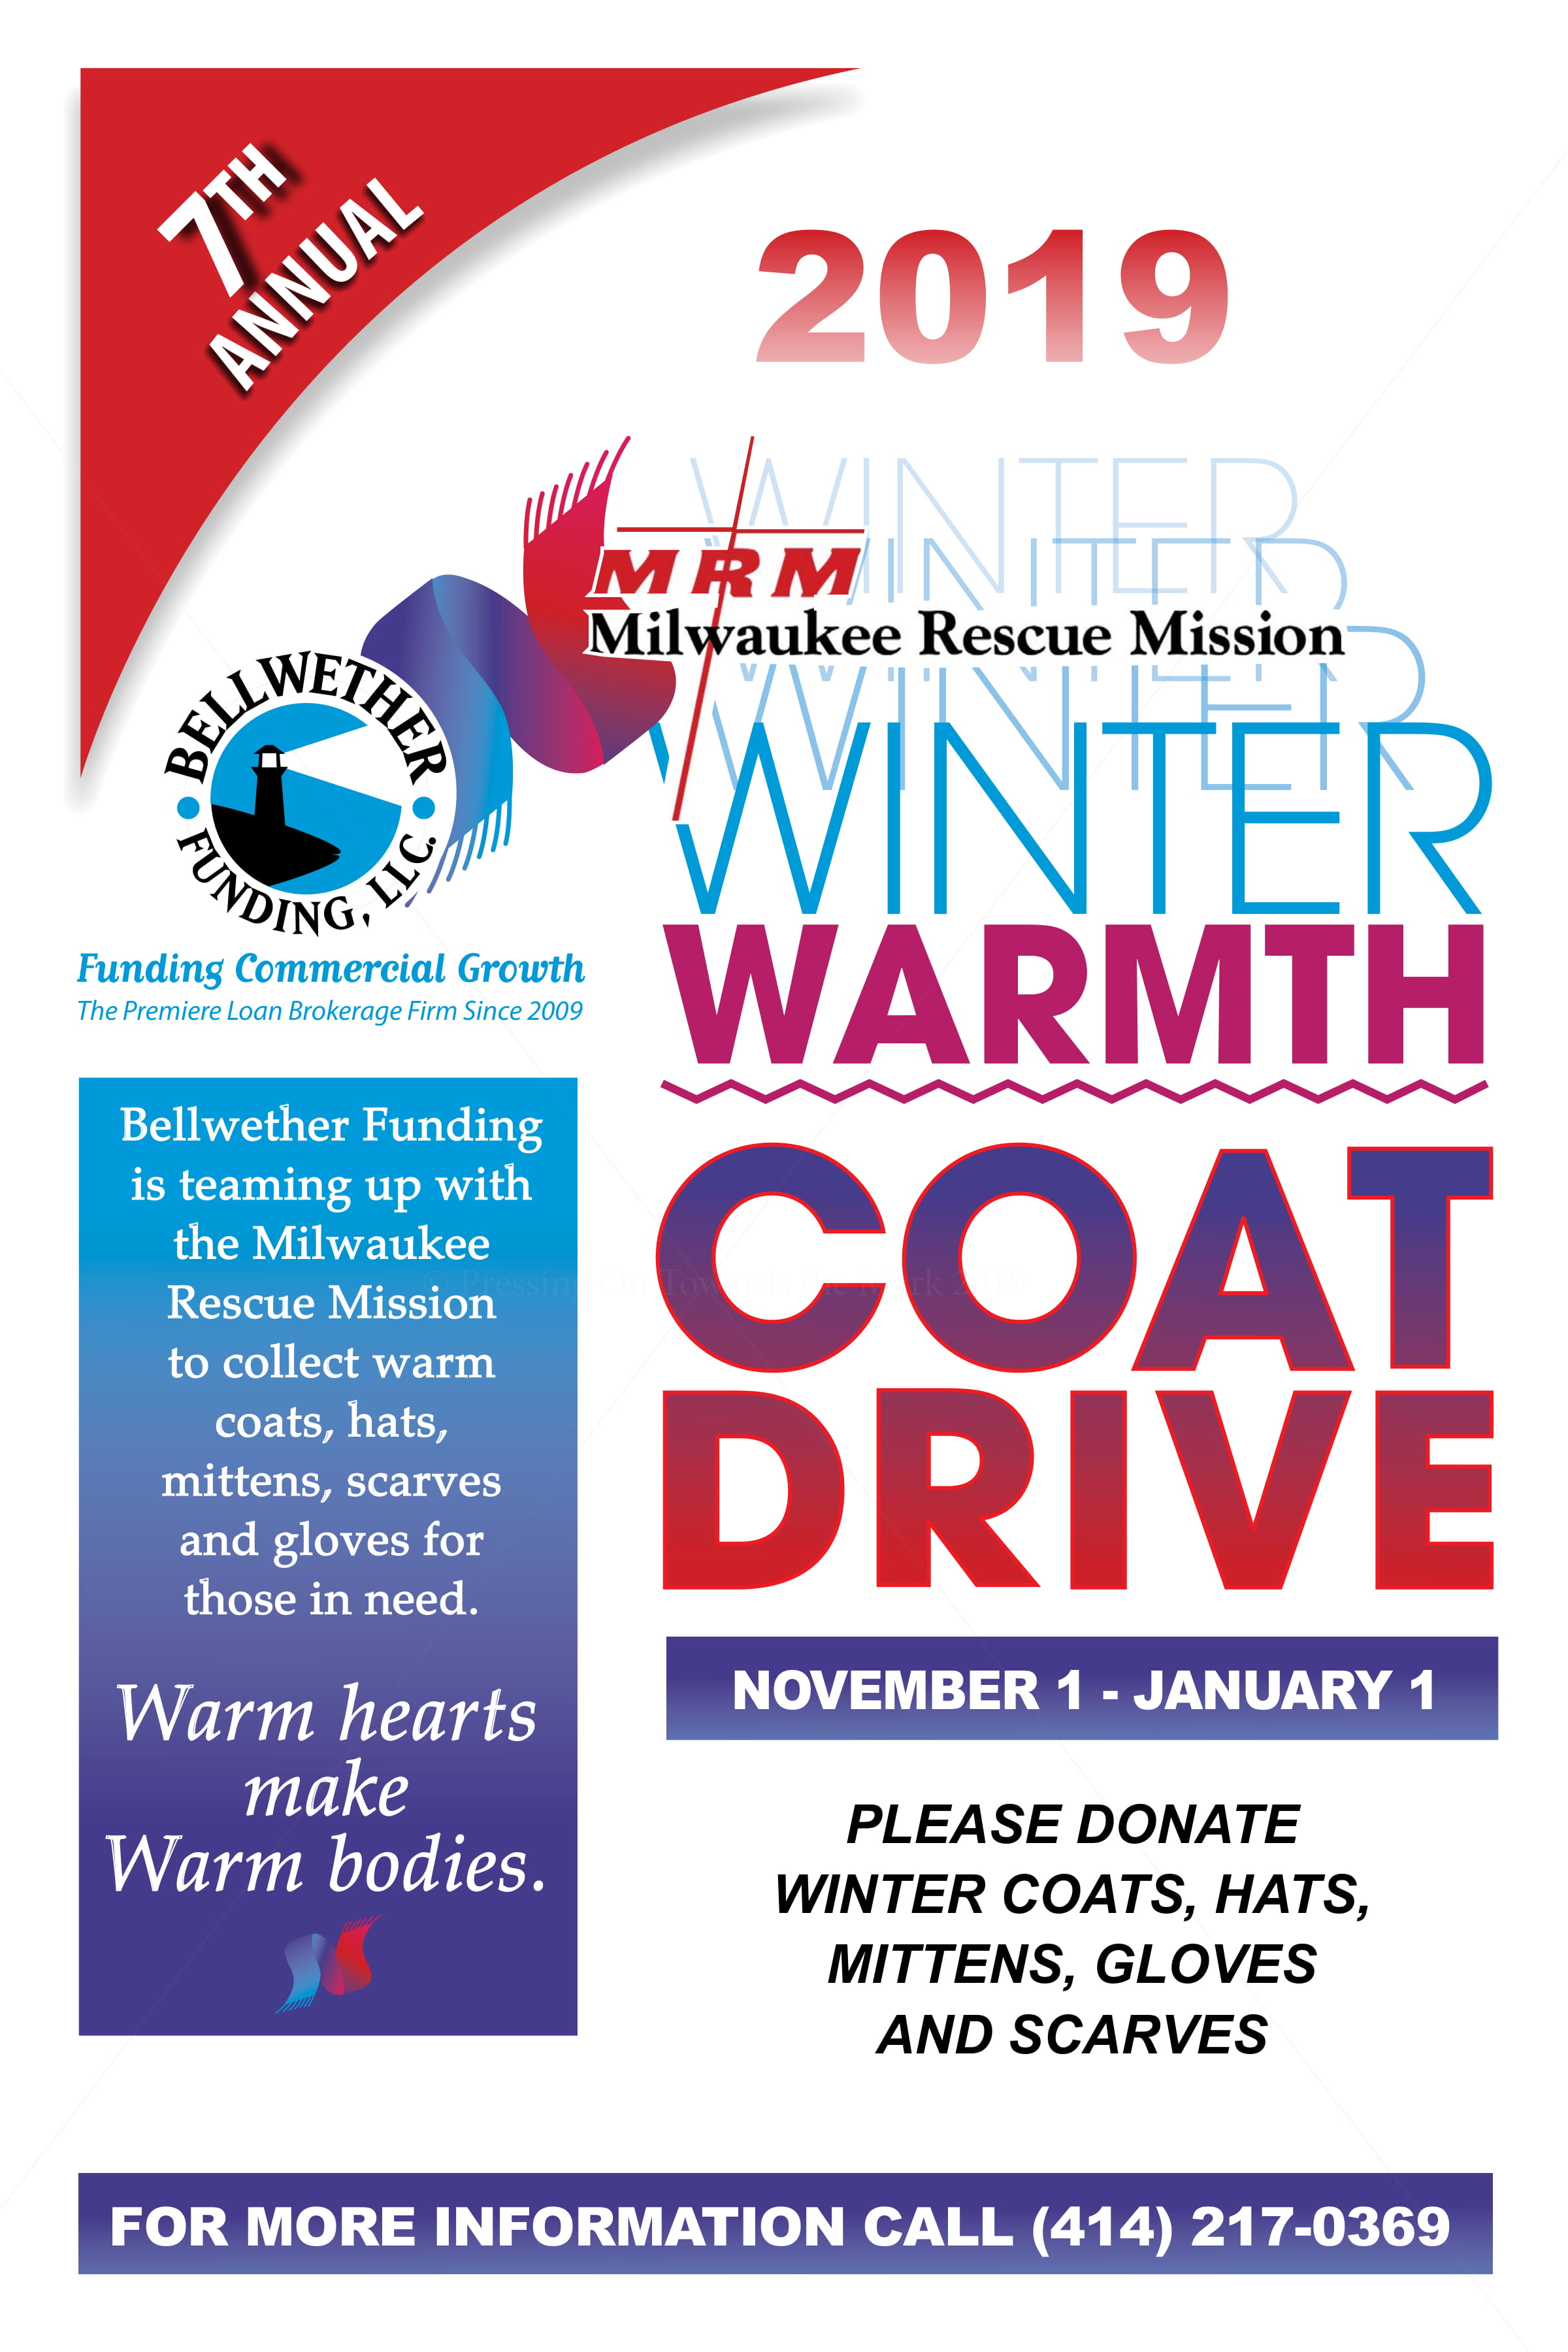 7th Annual Winter Warmth Coat Drive